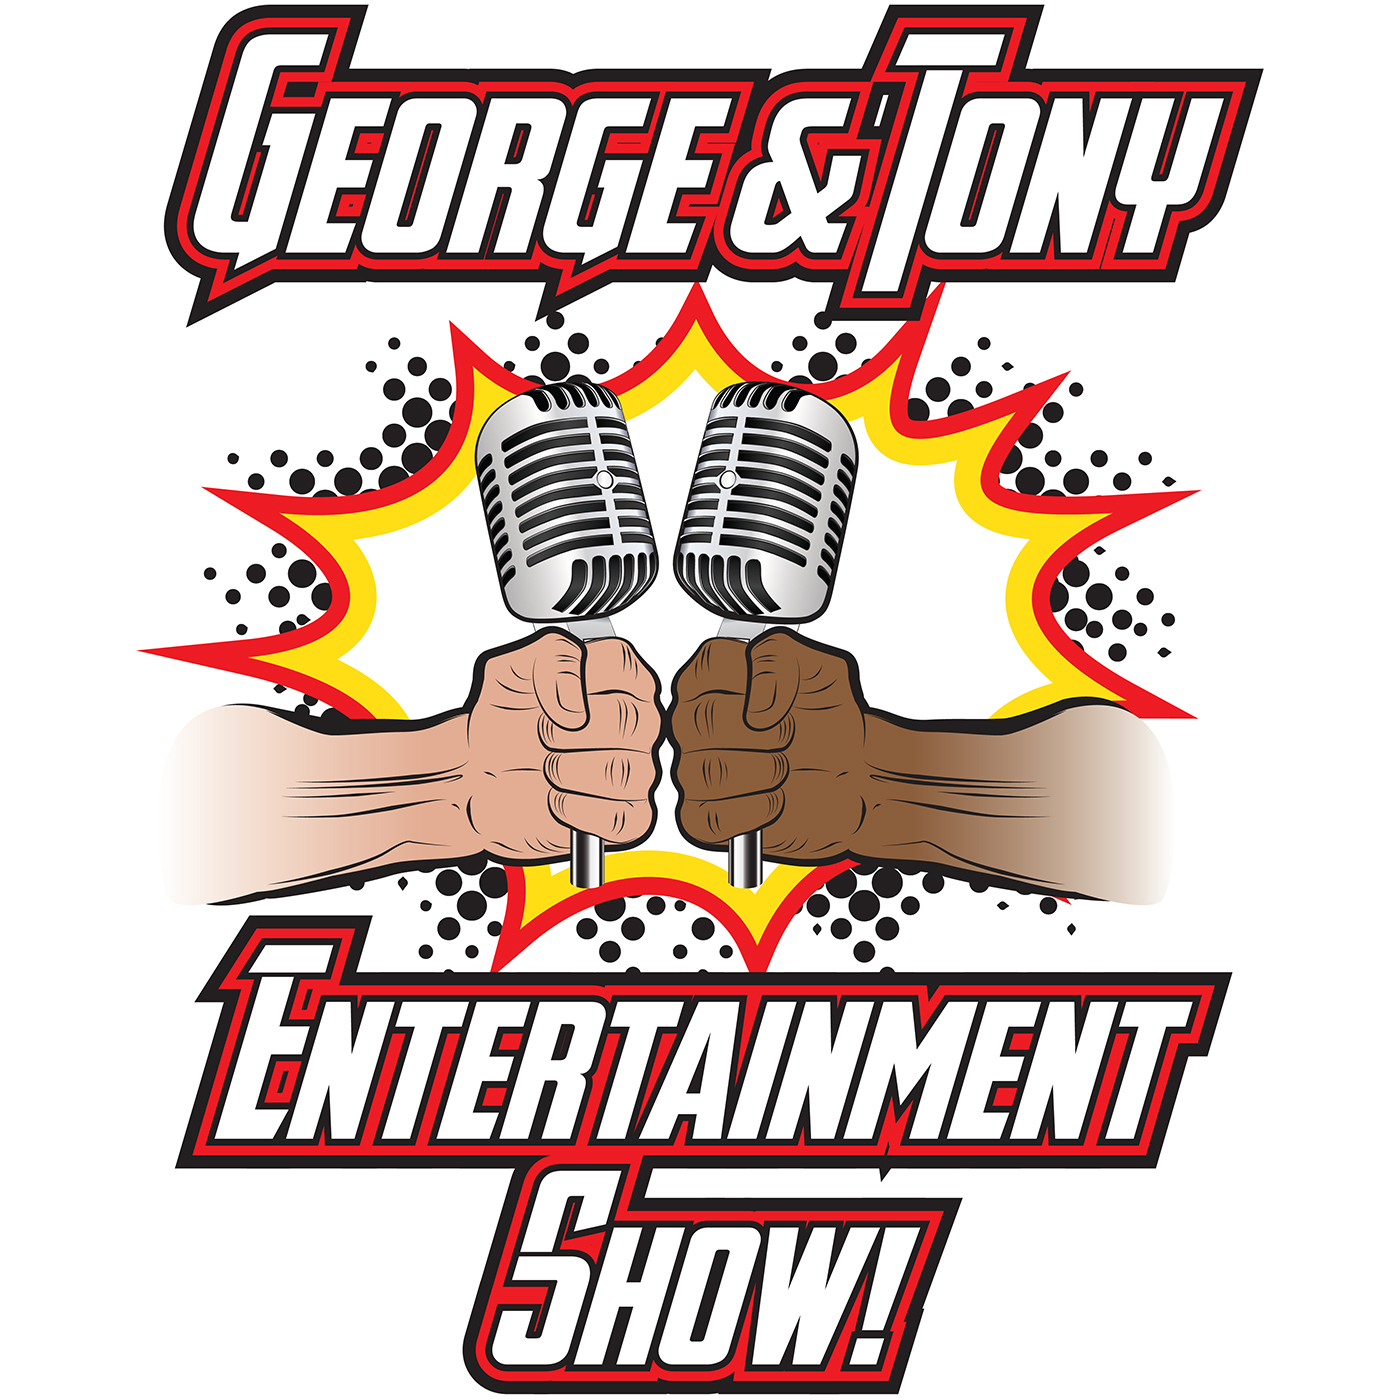 George and Tony Entertainment Show #159